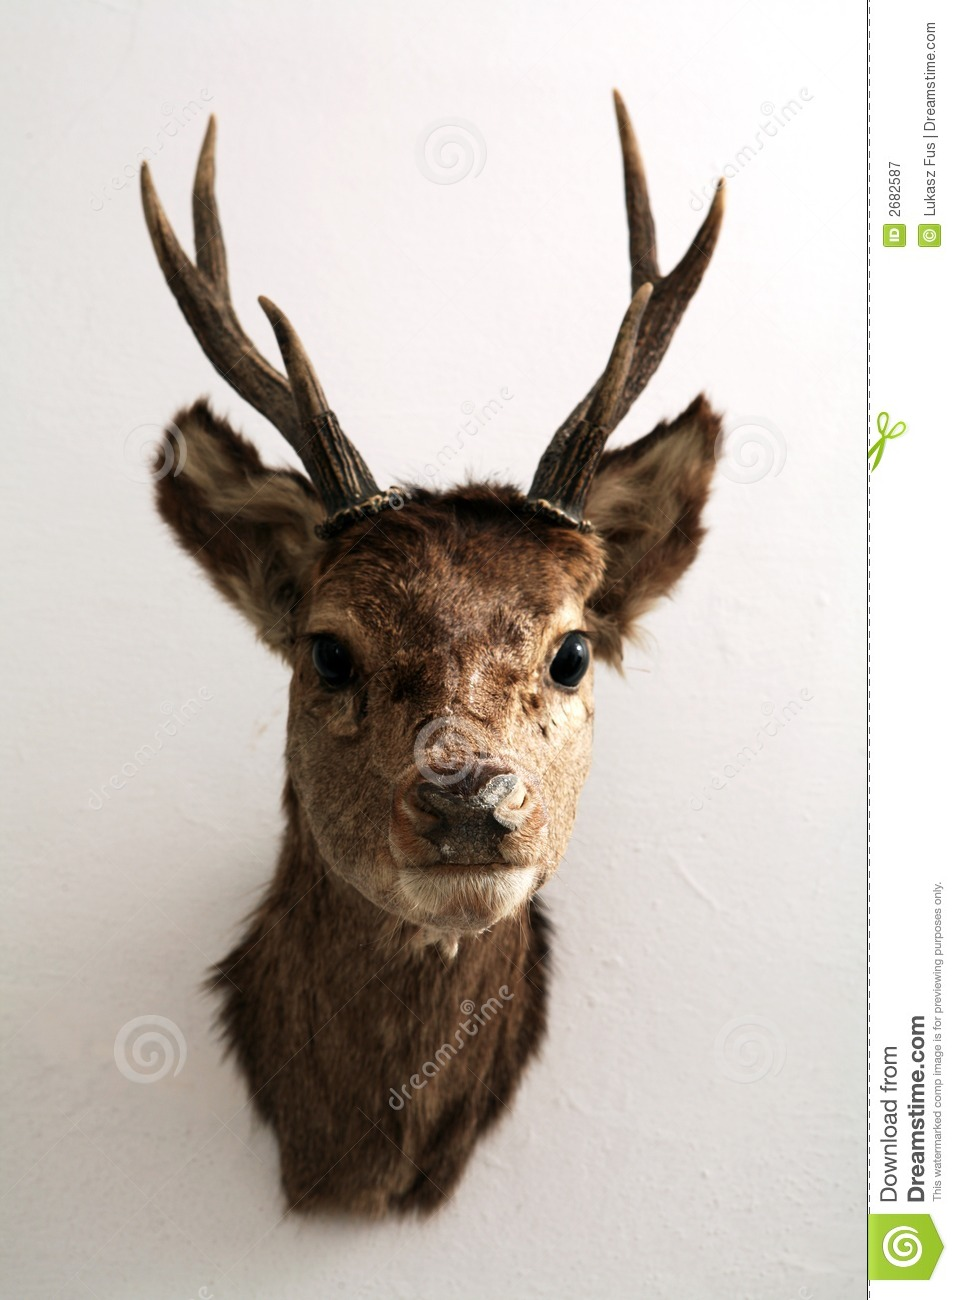 Mounted Deer Head Stock Image Image Of Deer Antler